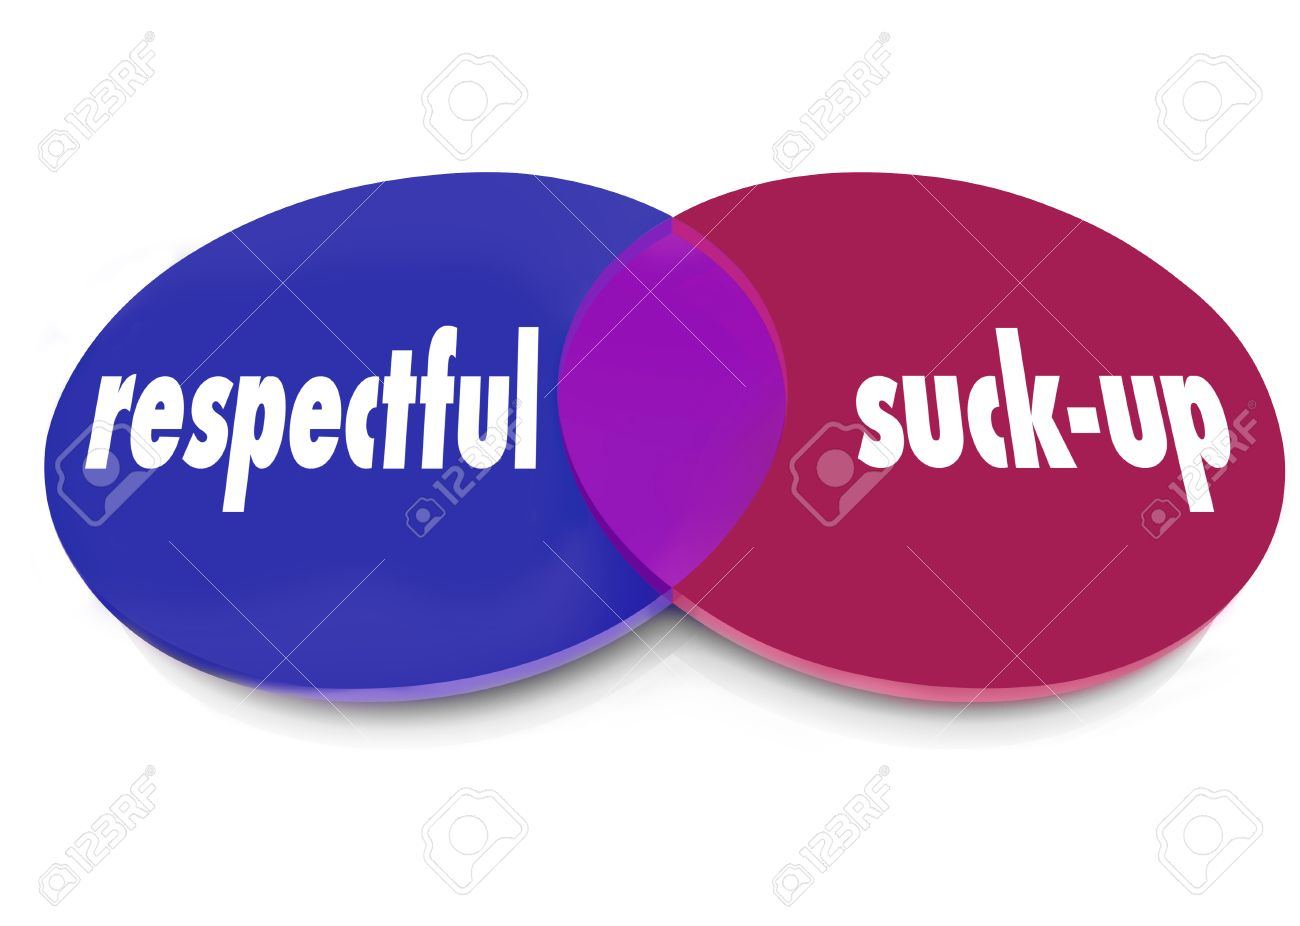 hight resolution of respectful vs suck up words on a venn diagram of overlapping circles to illustrate kissing